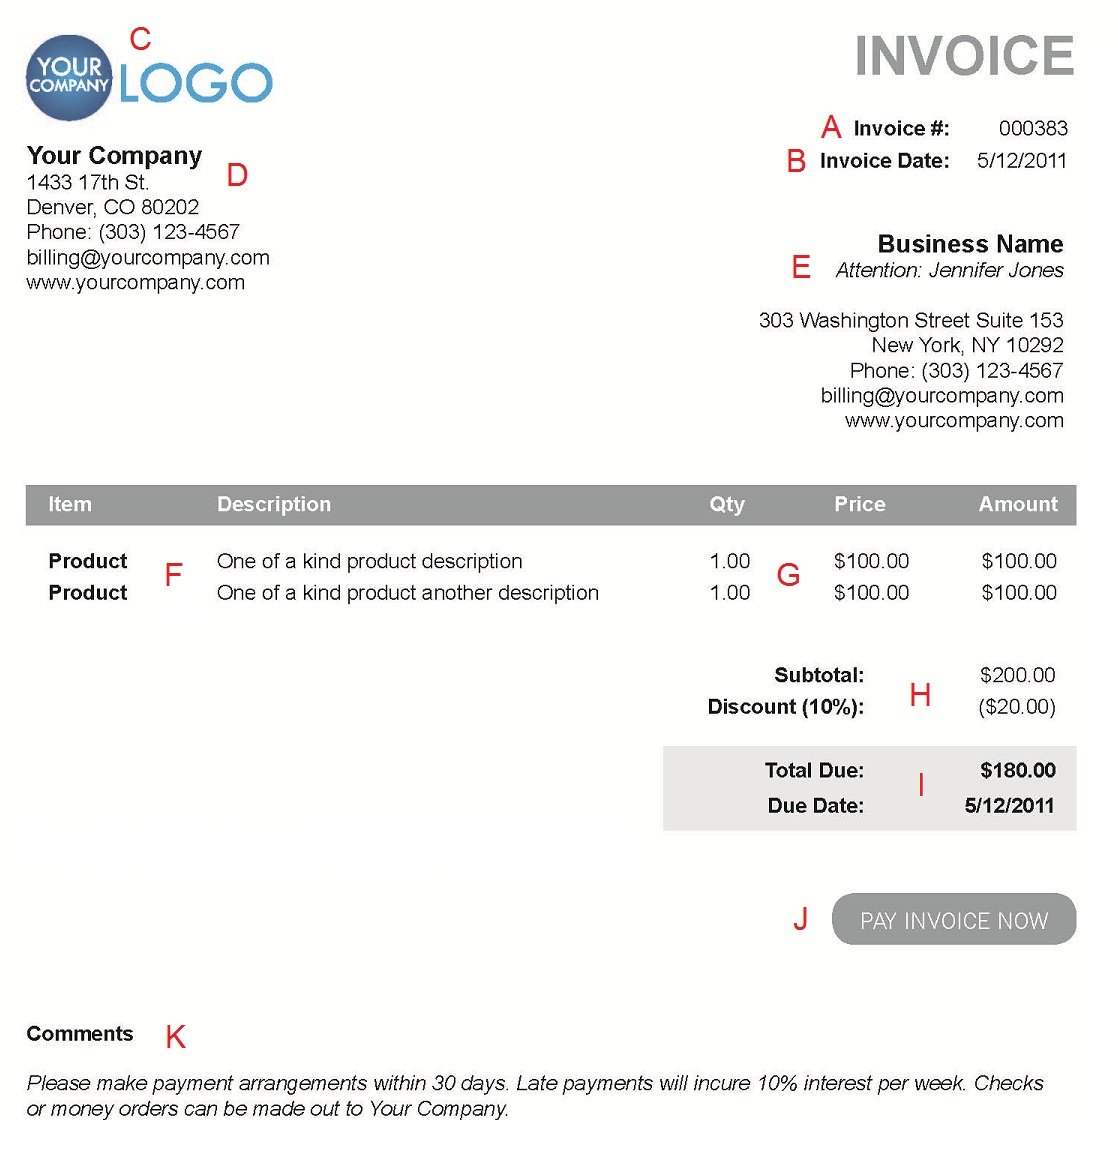 Floobydustus  Winsome The  Different Sections Of An Electronic Payment Invoice With Fetching A  With Beautiful Free Invoice Template Google Docs Also Auto Repair Invoices In Addition Car Invoice Pricing And What Is A Ebay Invoice As Well As How To Write Up An Invoice Additionally How Do You Send An Invoice On Paypal From Paysimplecom With Floobydustus  Fetching The  Different Sections Of An Electronic Payment Invoice With Beautiful A  And Winsome Free Invoice Template Google Docs Also Auto Repair Invoices In Addition Car Invoice Pricing From Paysimplecom